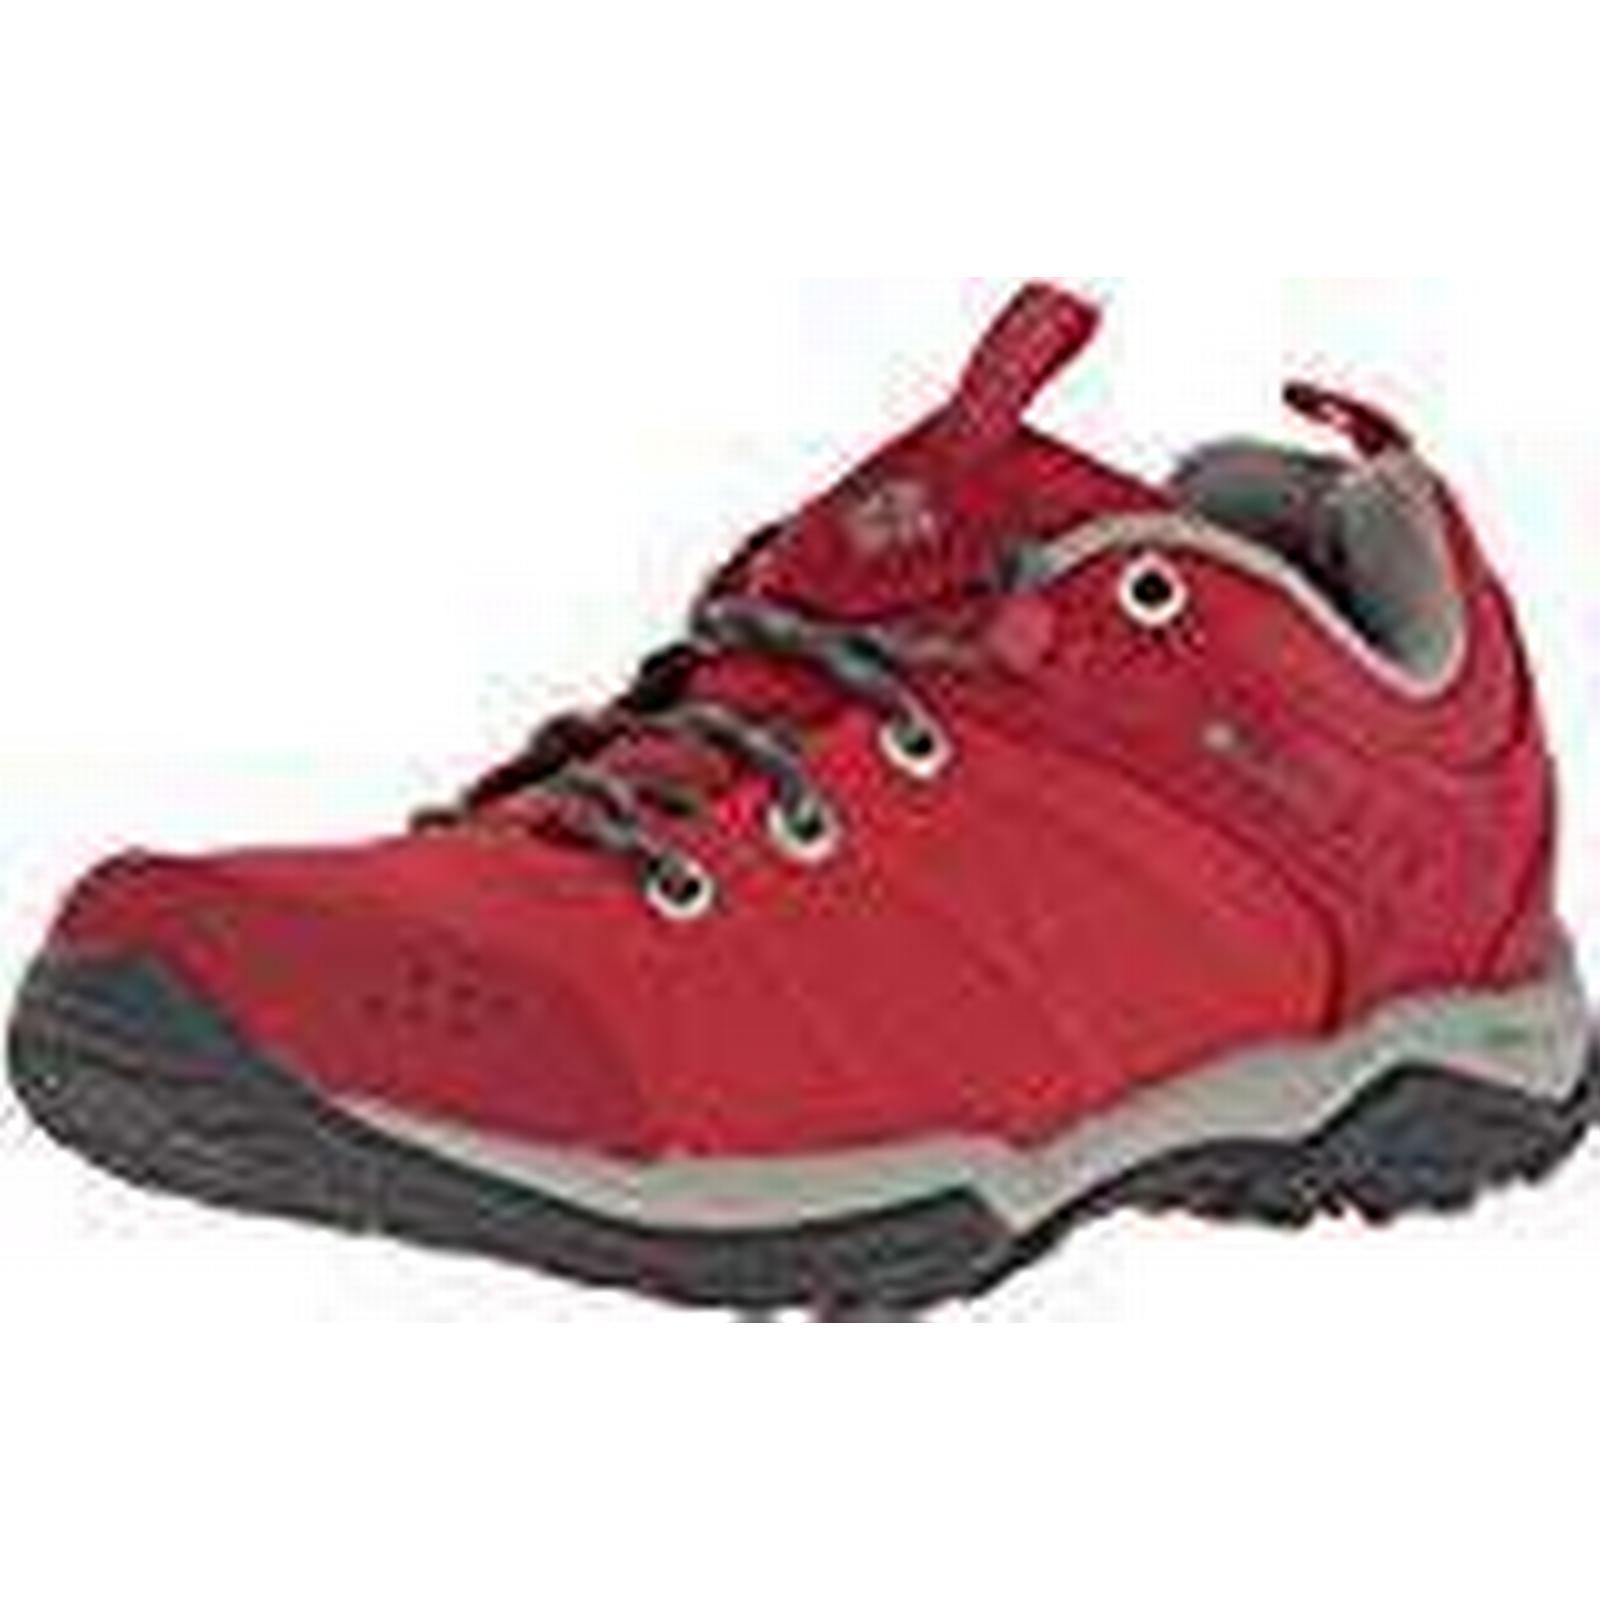 Columbia Women's Rise Fire Venture Textile Low Rise Women's Hiking Shoes, Red (Mountain Red/ Kettle), Size 6 7f0f34